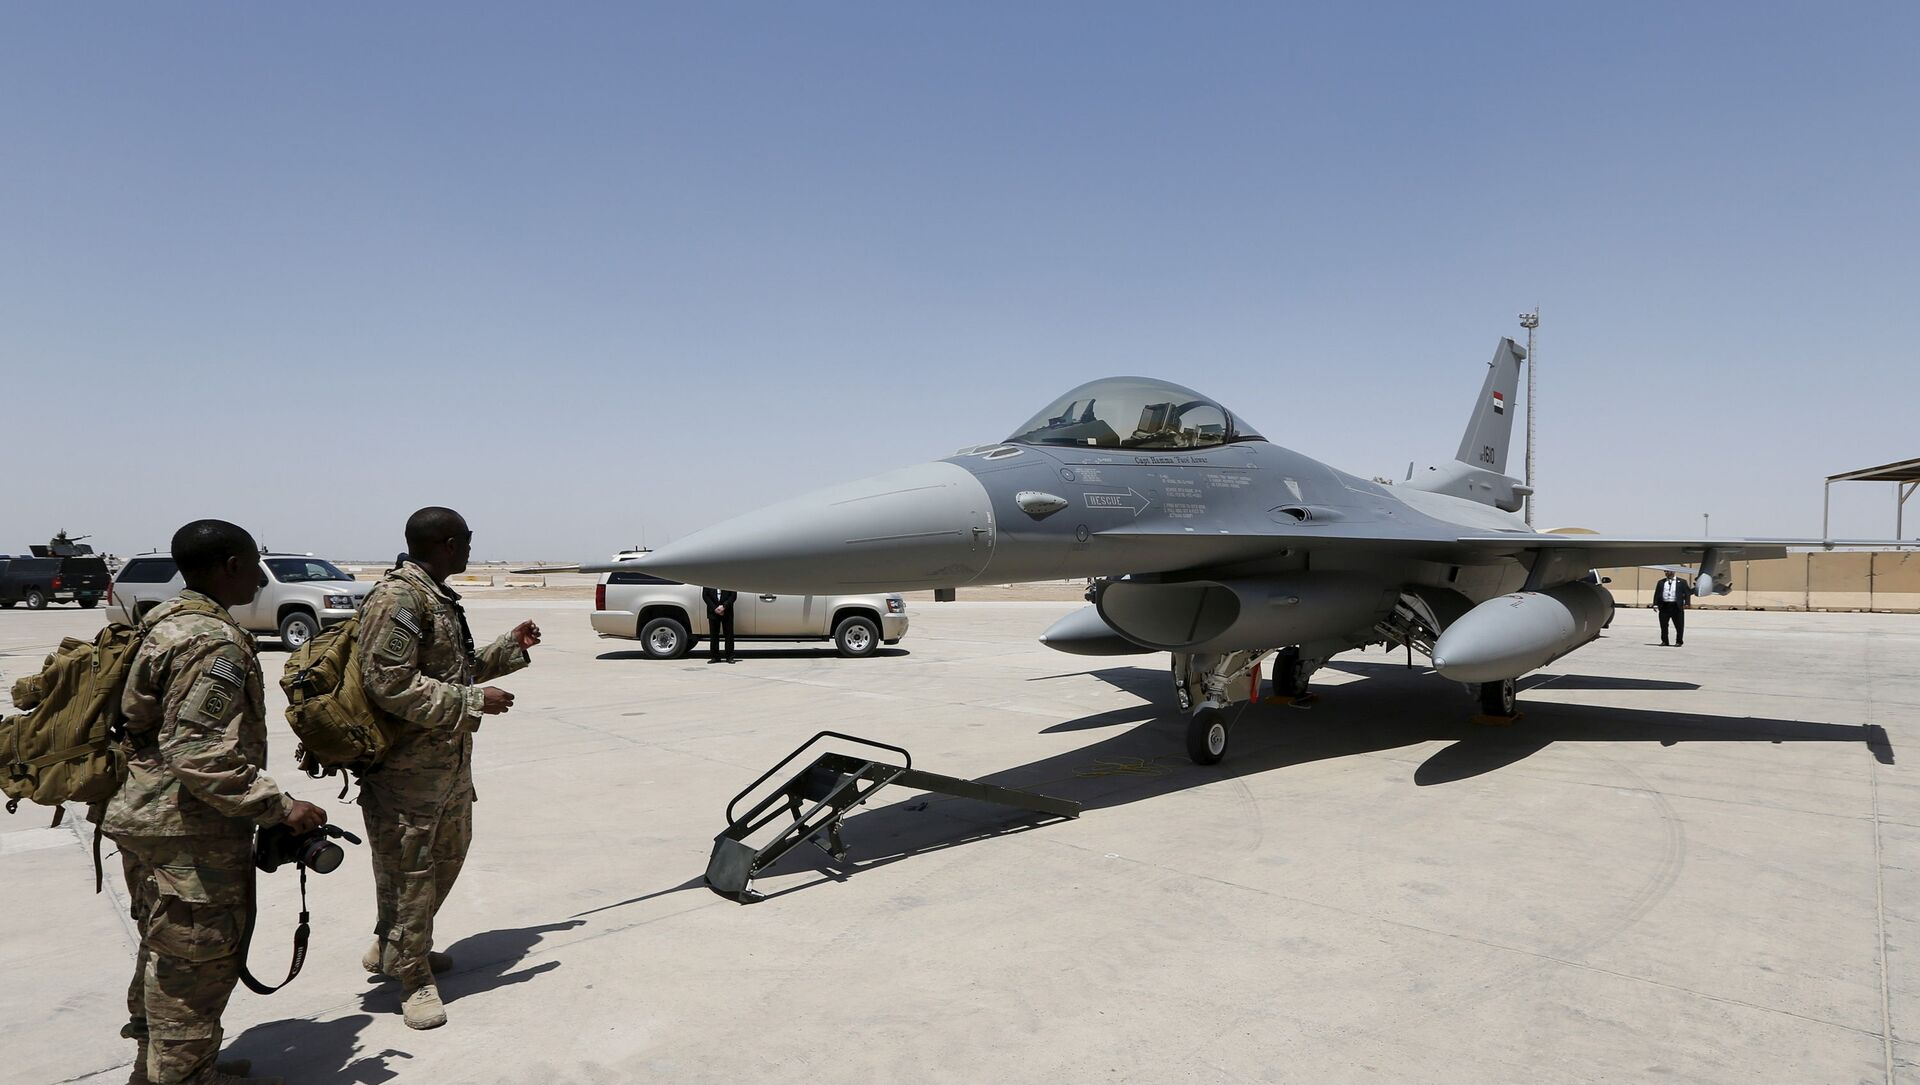 U.S. Army soldiers look at an F-16 fighter jet during an official ceremony to receive four such aircraft from the United States, at a military base in Balad, Iraq - Sputnik International, 1920, 27.07.2021